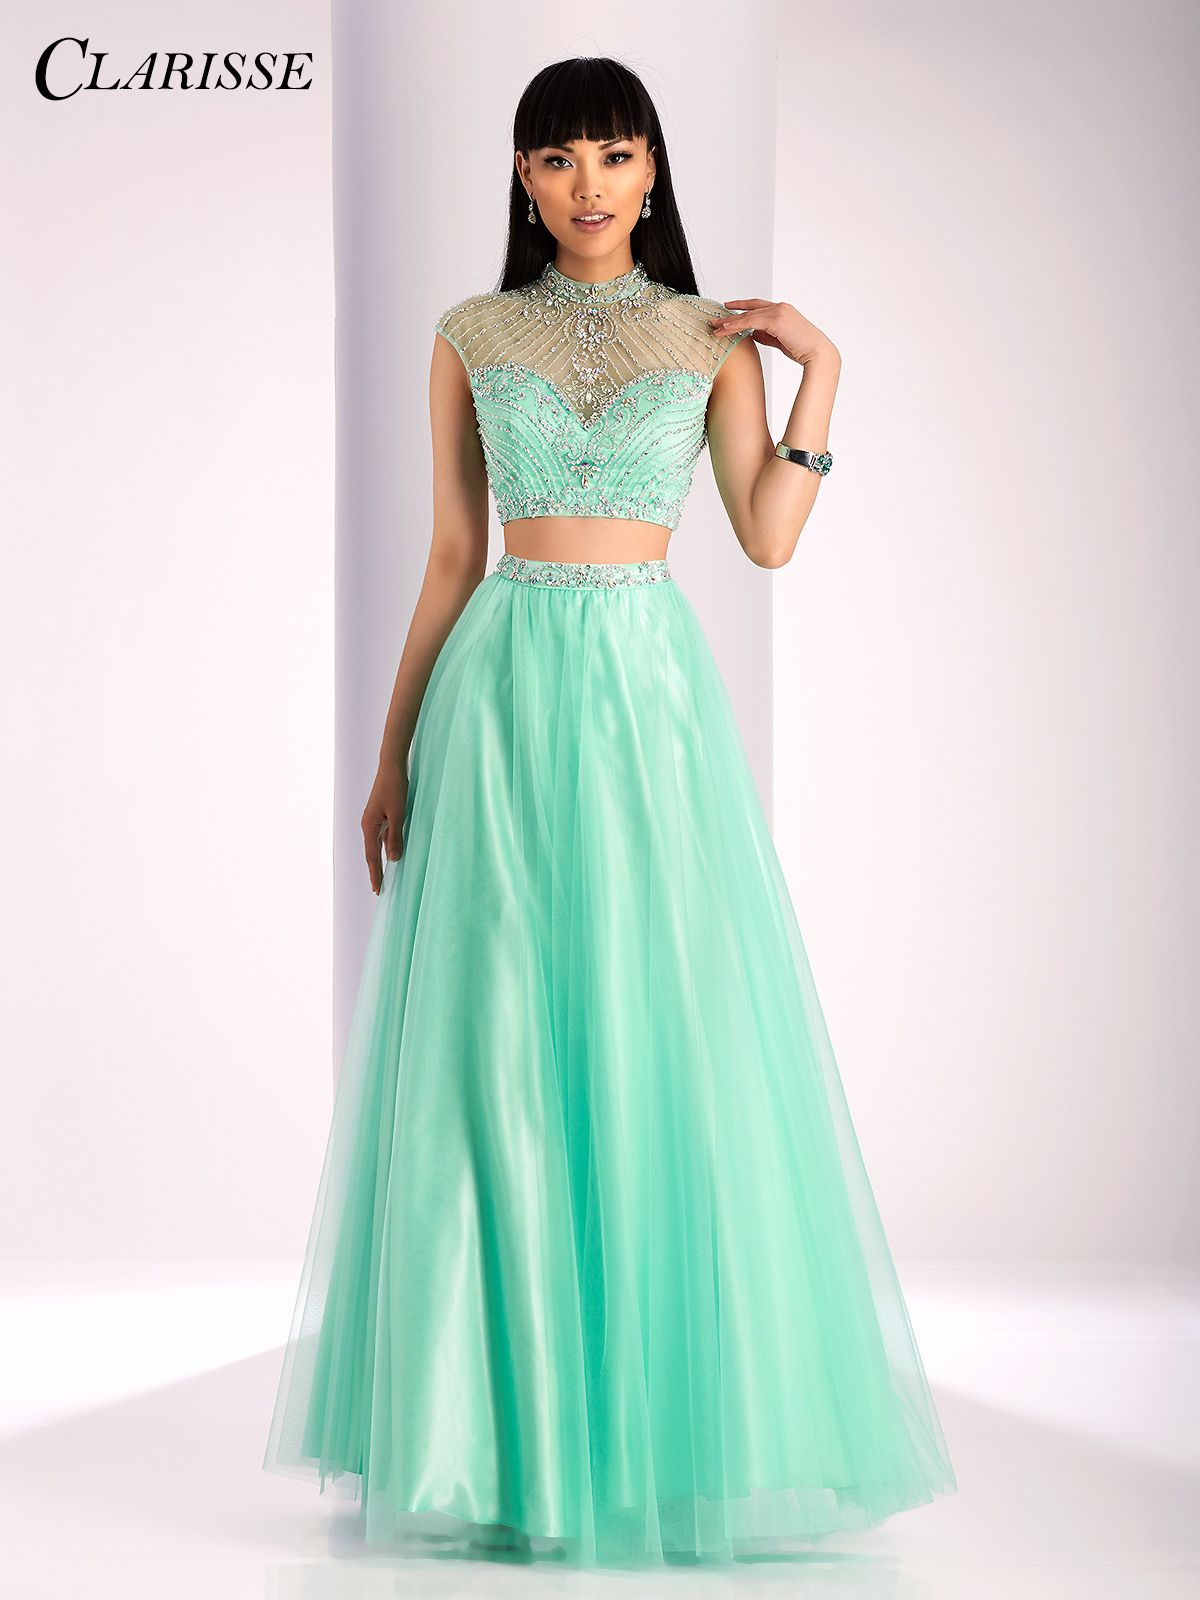 b7b805b24e1 Clarisse 2017 prom dress 3017. A pretty and sparkly two piece ball gown  prom dress in unique pastel mint green!